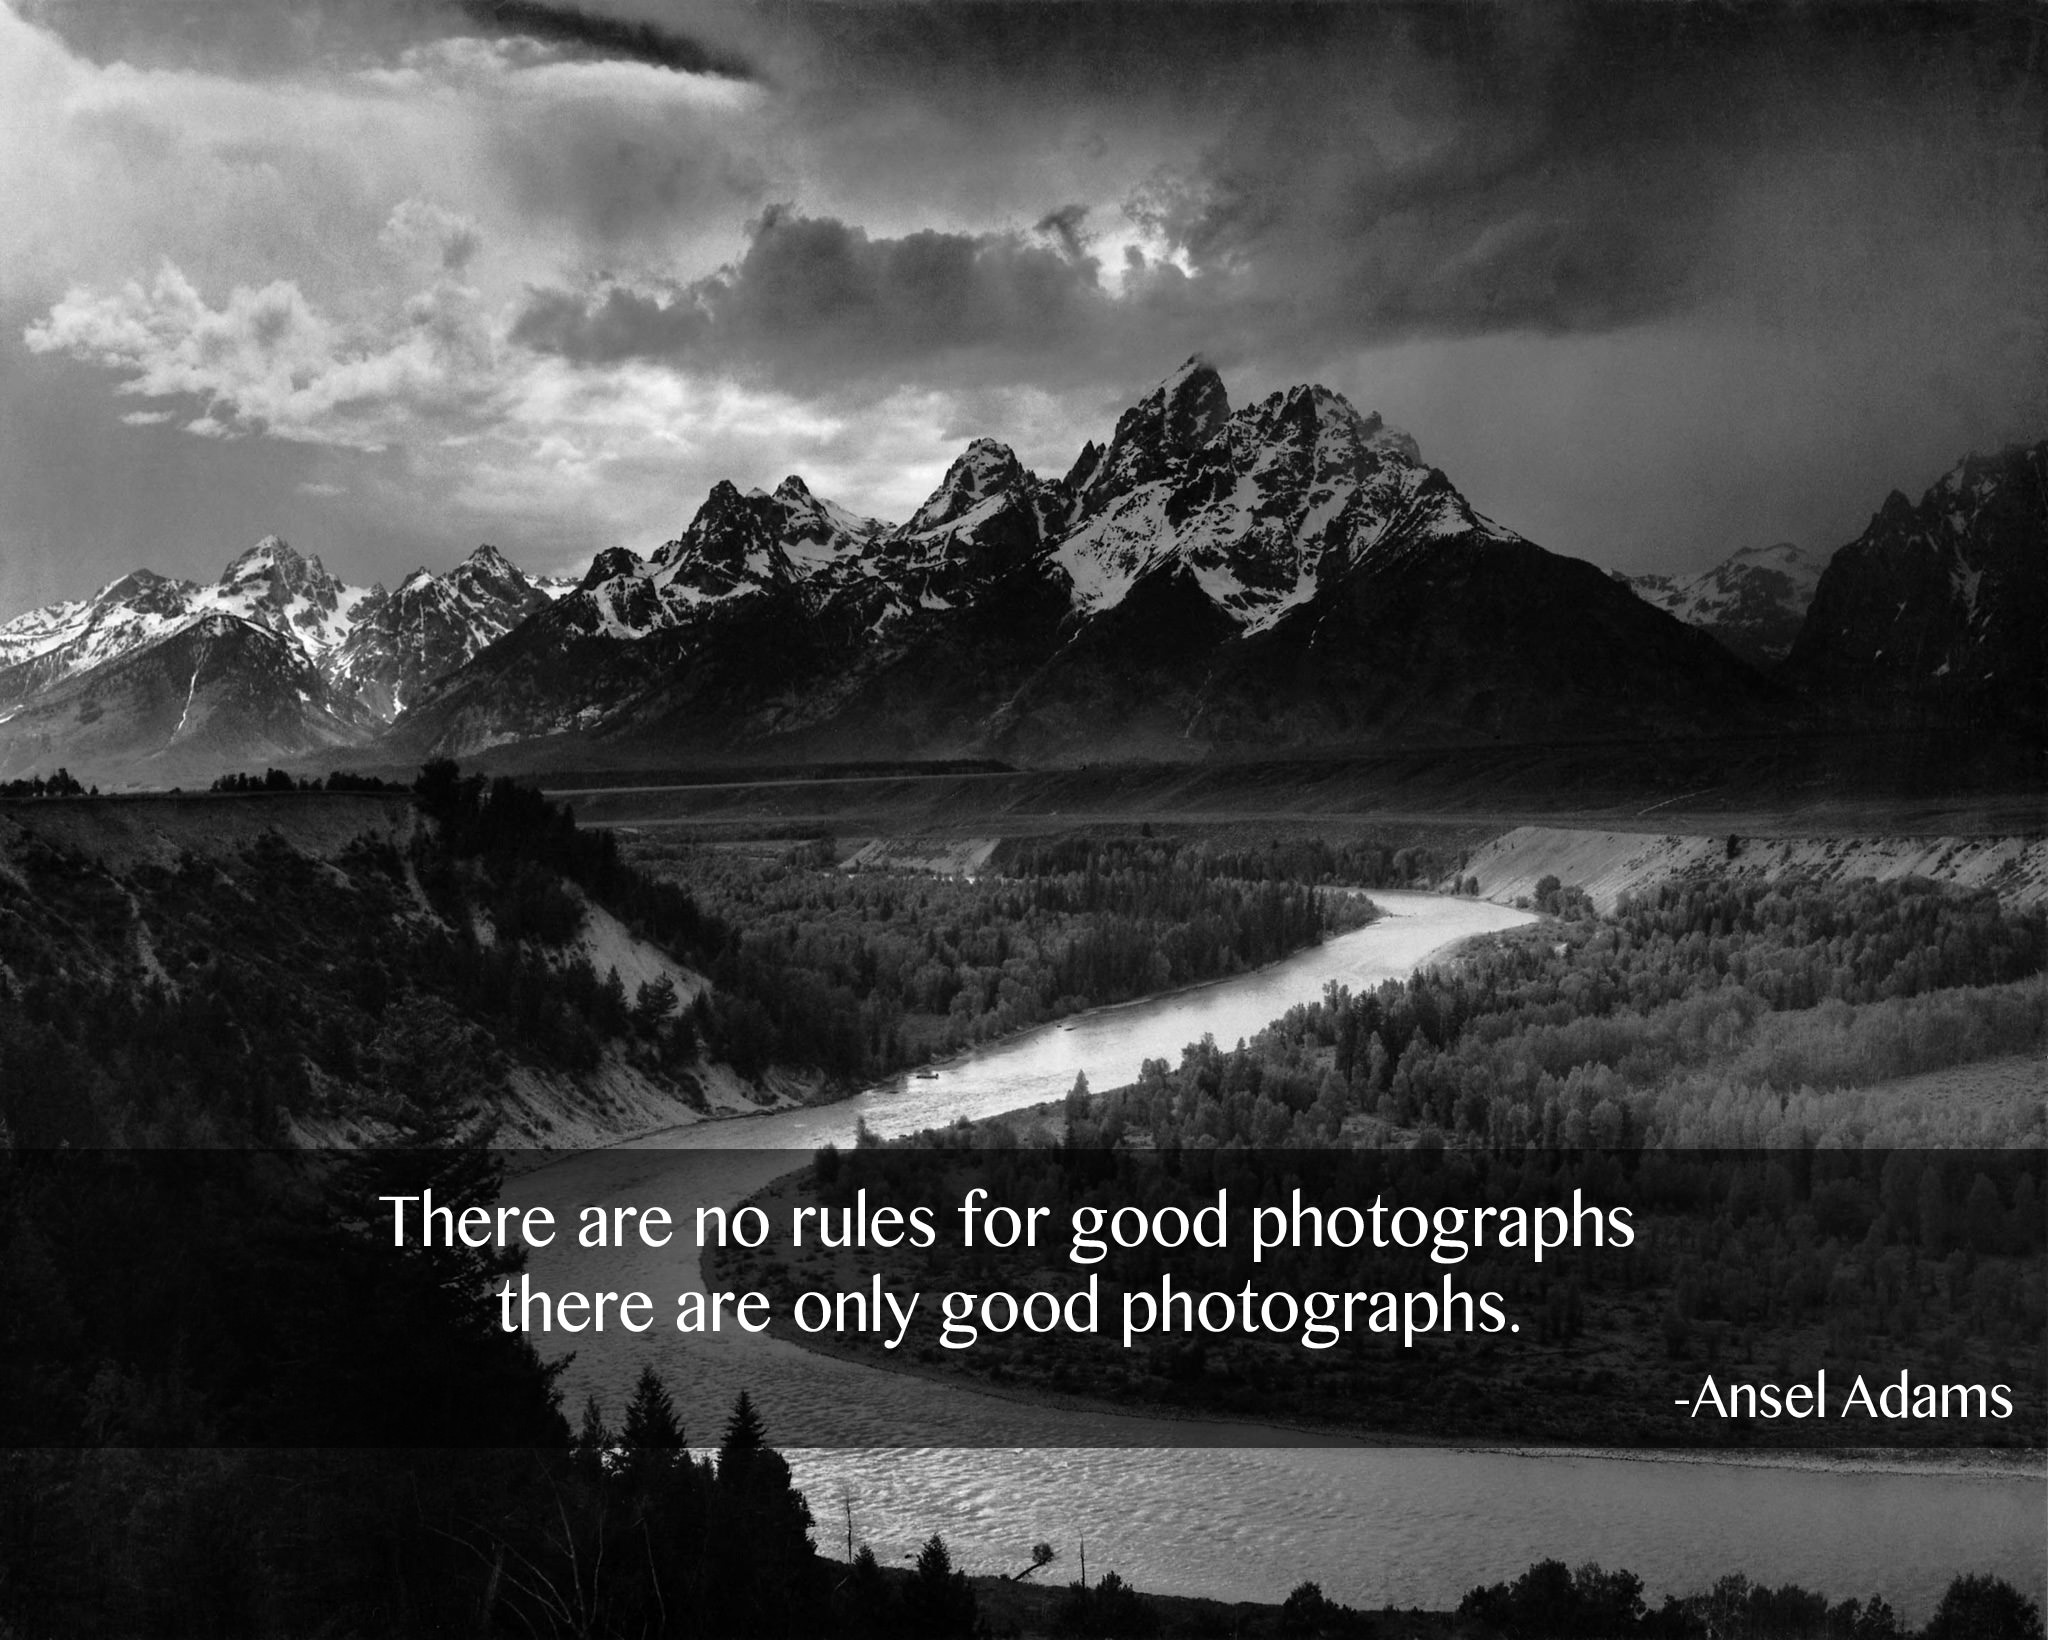 100 Most Inspirational Photography Quotes Of All Time